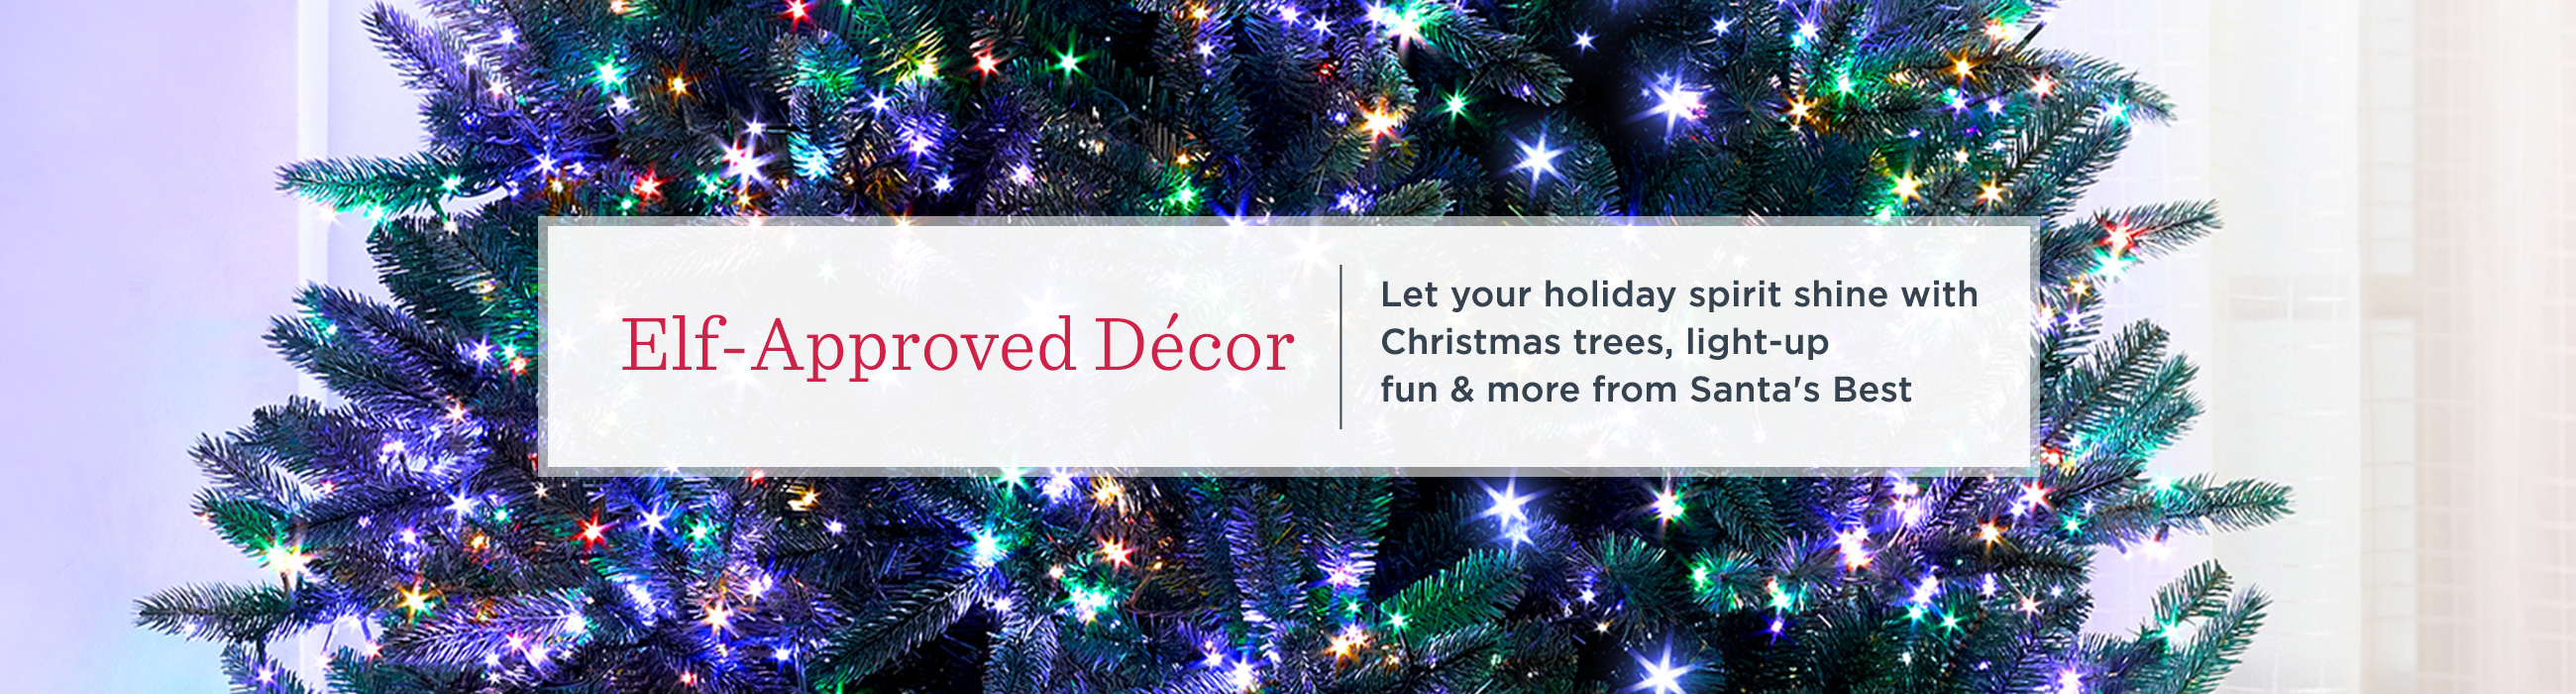 Elf-Approved Décor — Let your holiday spirit shine with Christmas trees, light-up fun & more from Santa's Best